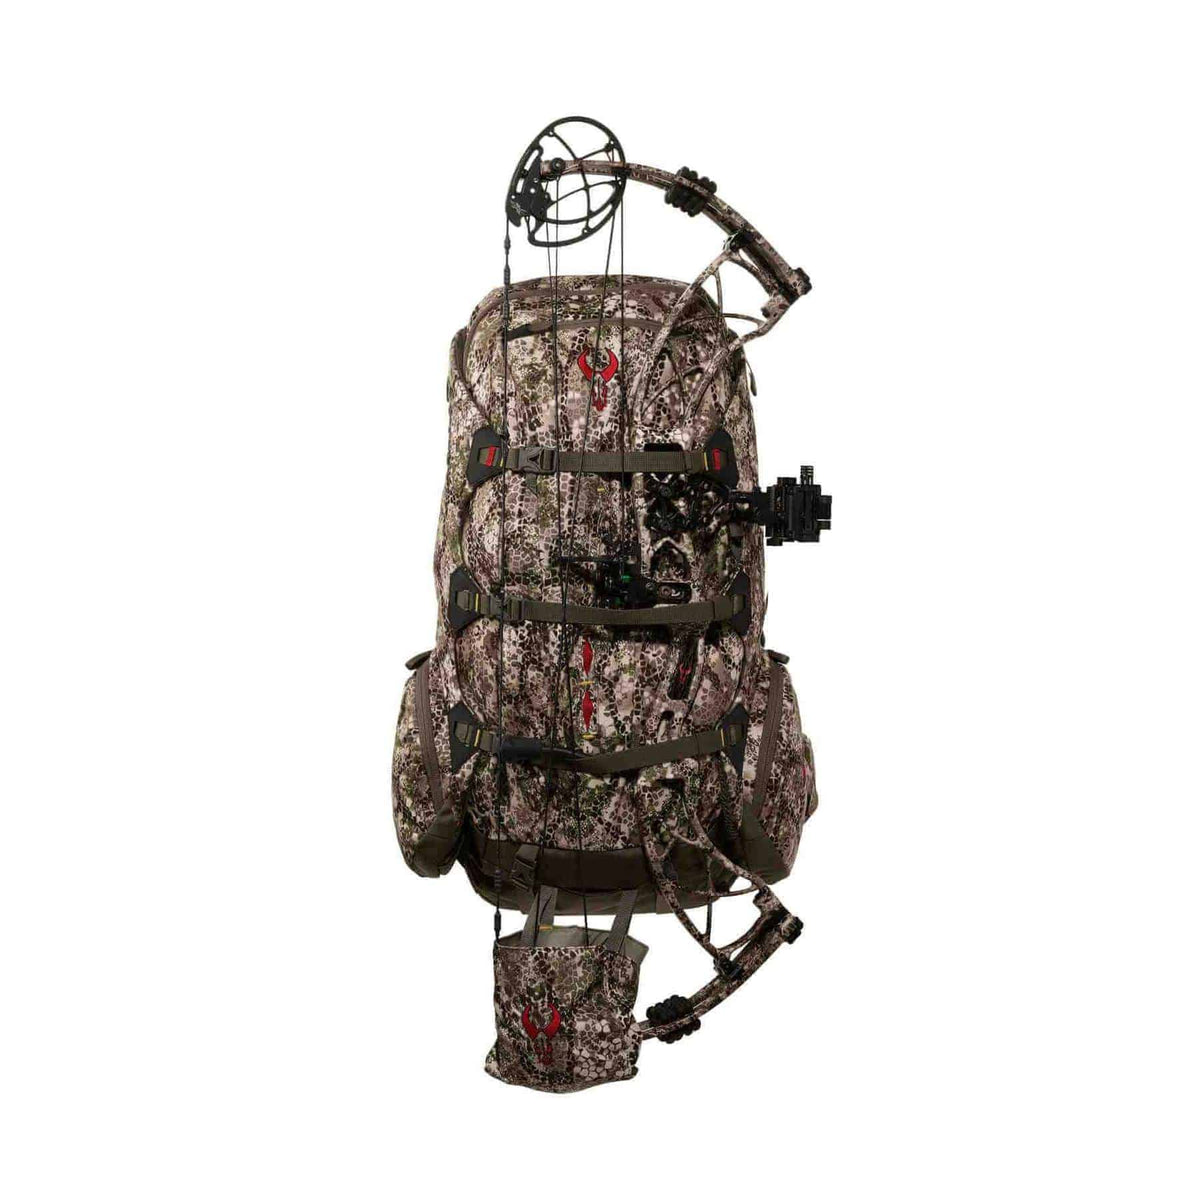 Badlands Packs 2200 Hunting Backpack 2020 Model Approach Camo Back Bow Boot